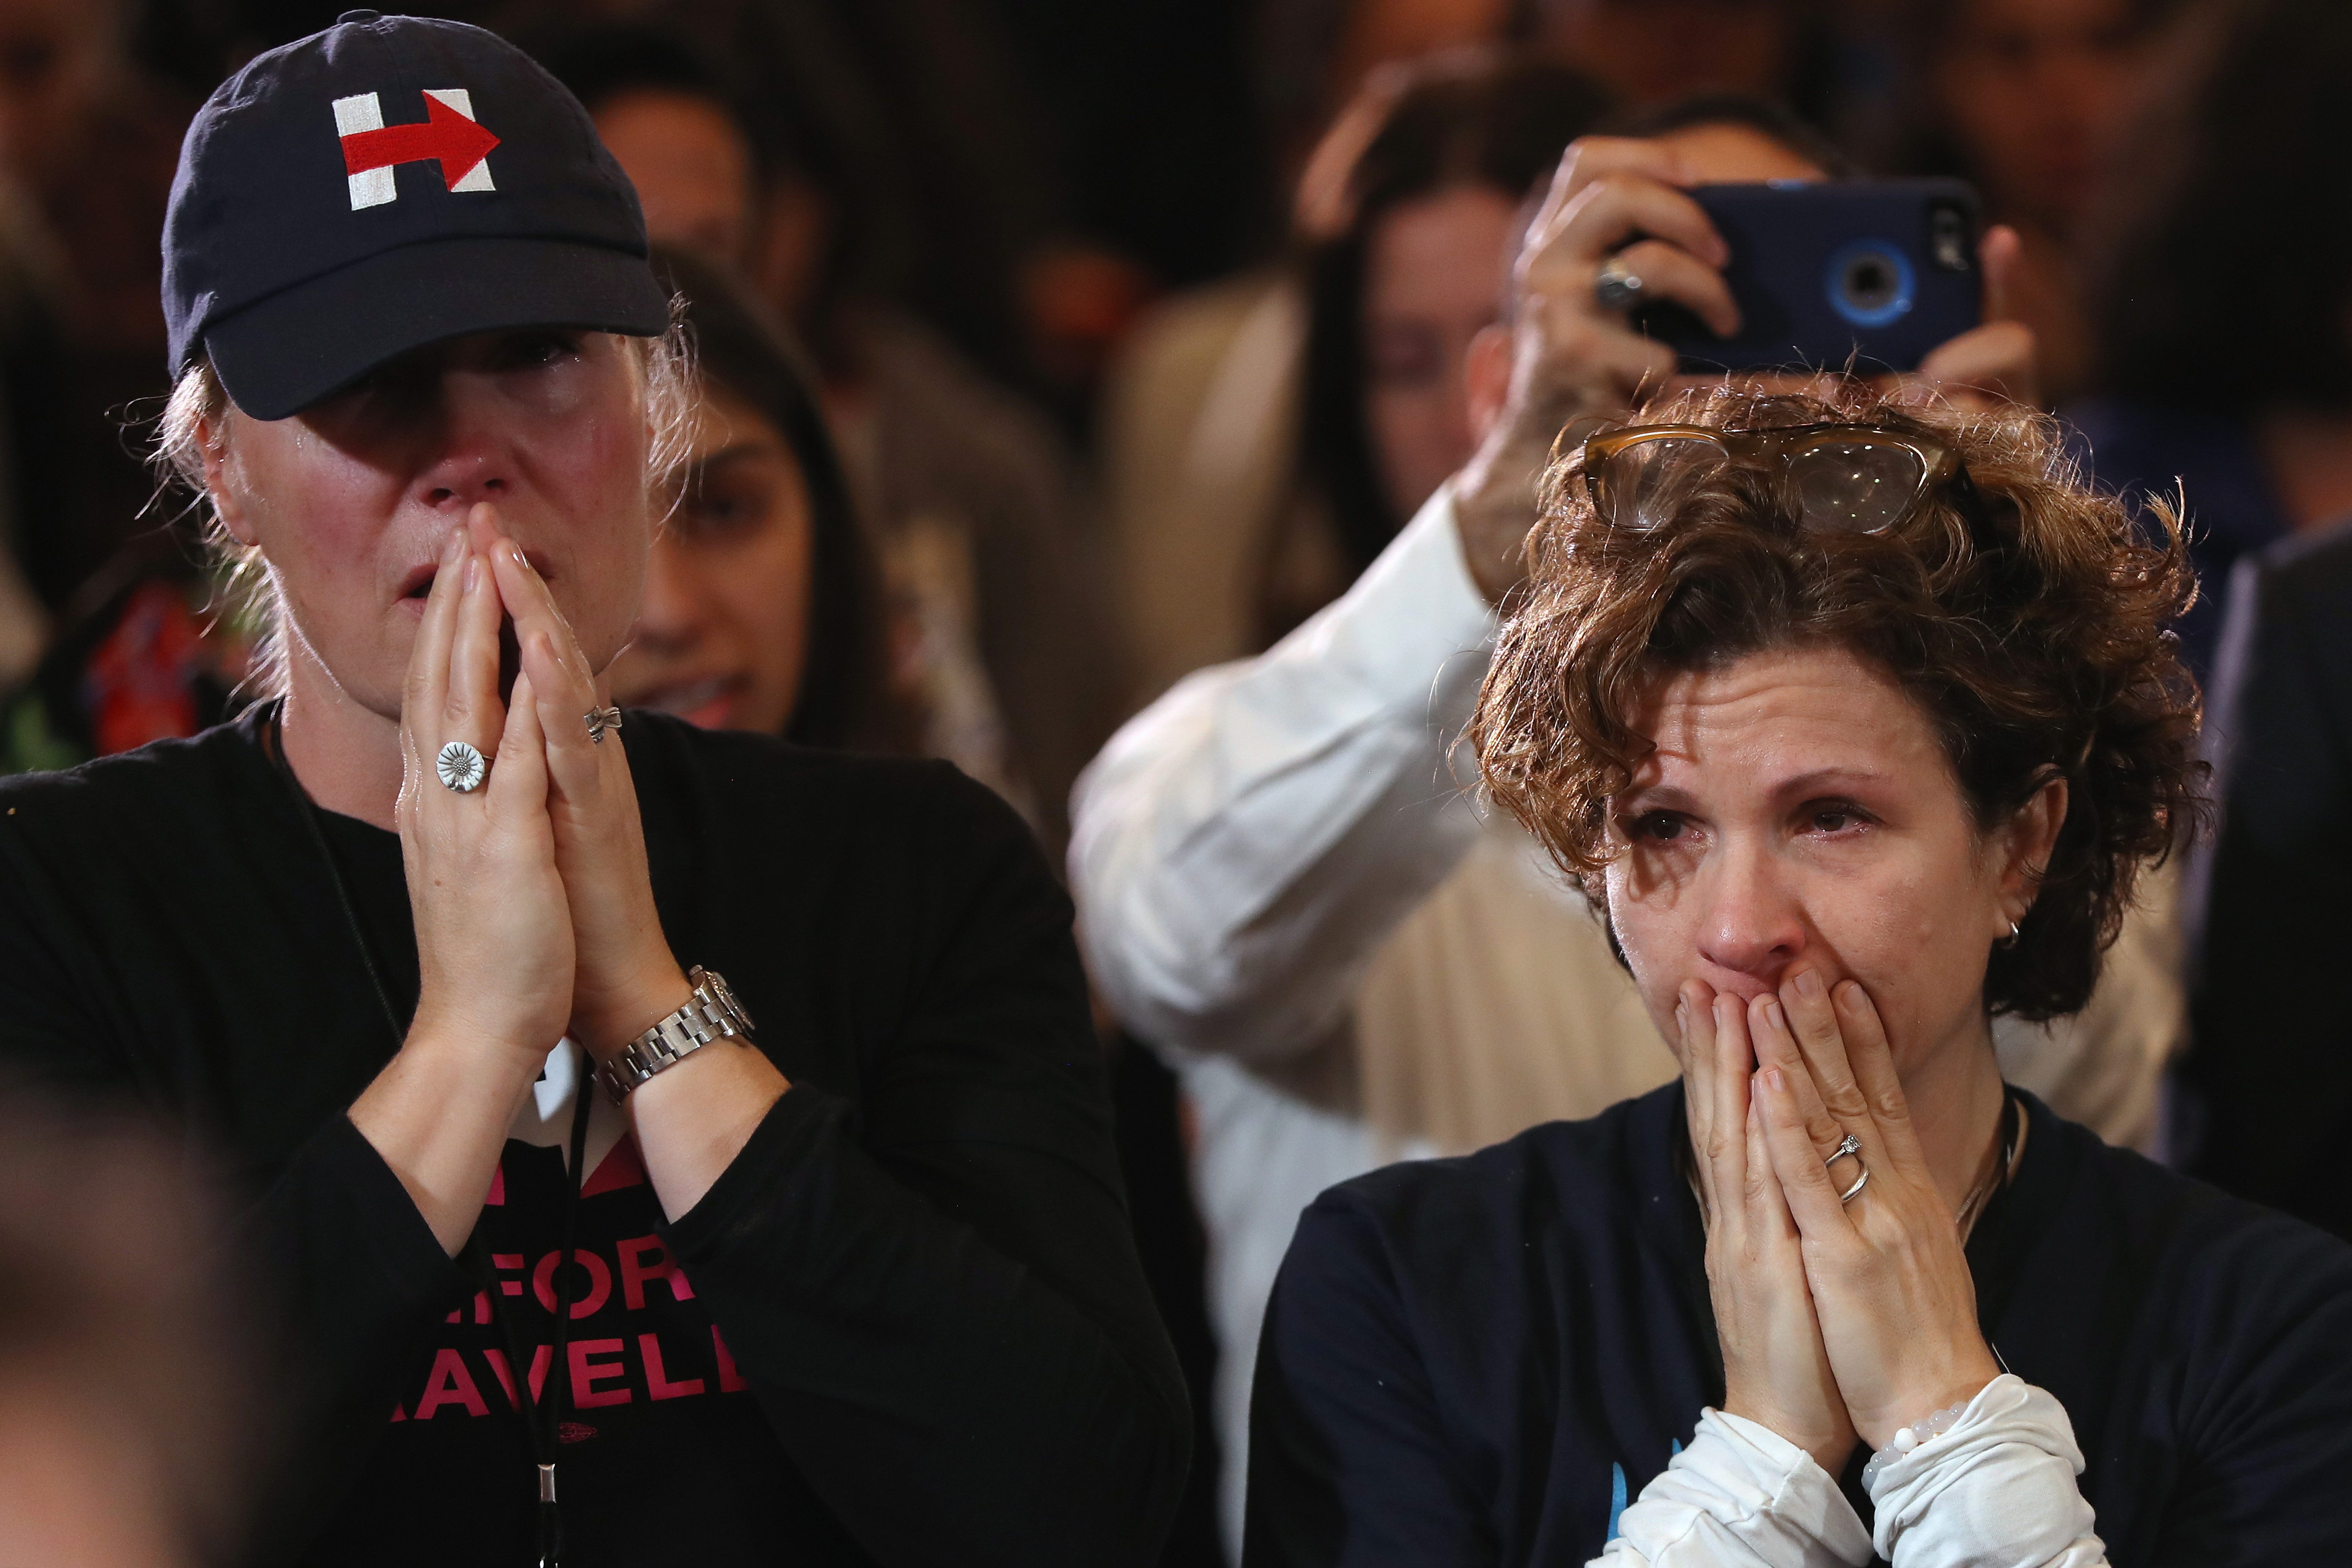 Hillary Clinton supporters weep while listening to her concession speech